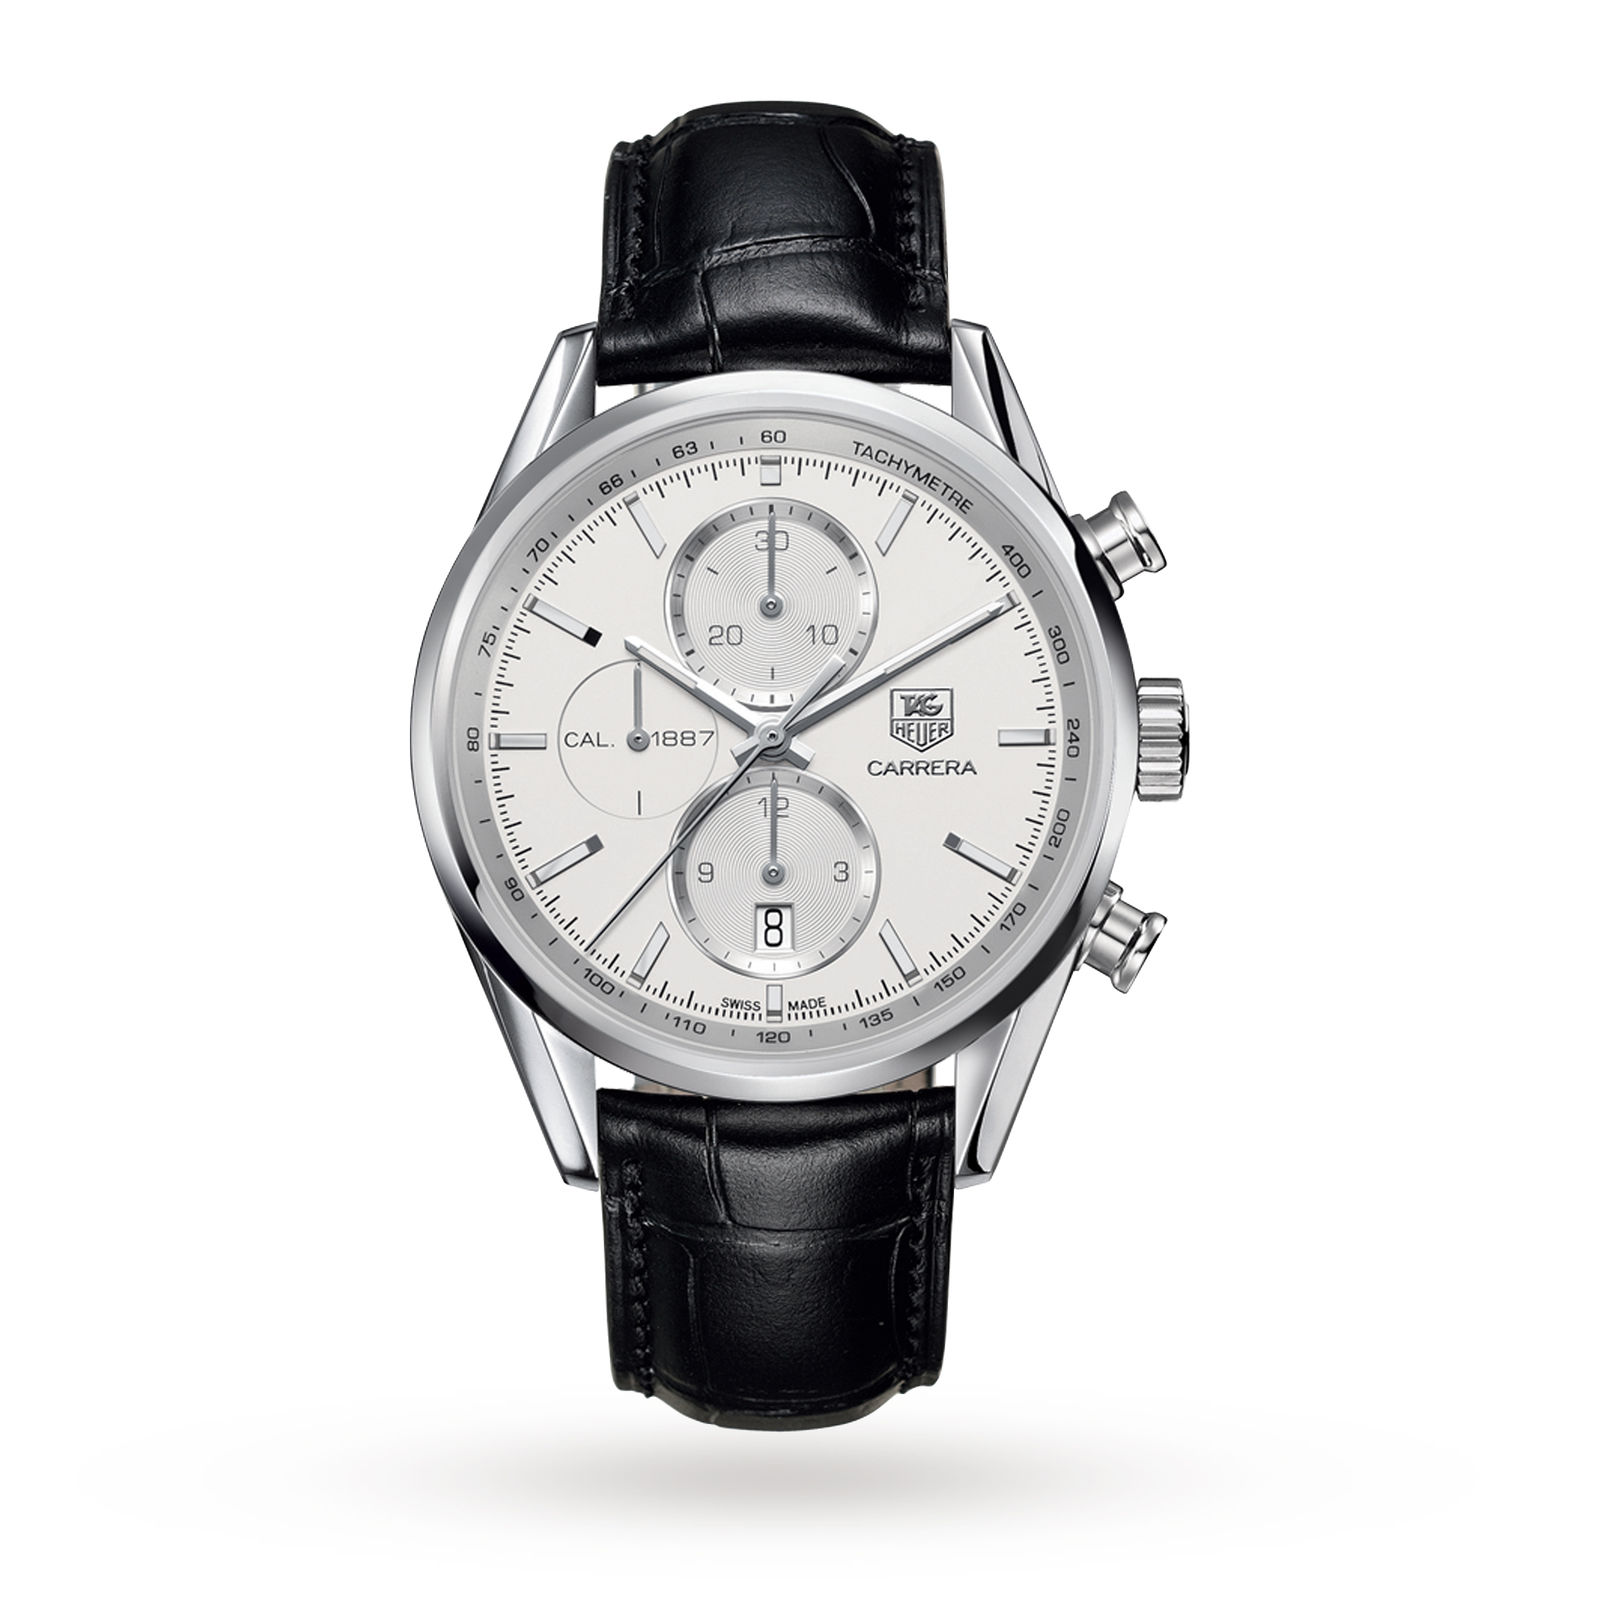 TAG Heuer Carrera Calibre 1887 Automatic Gents Watch